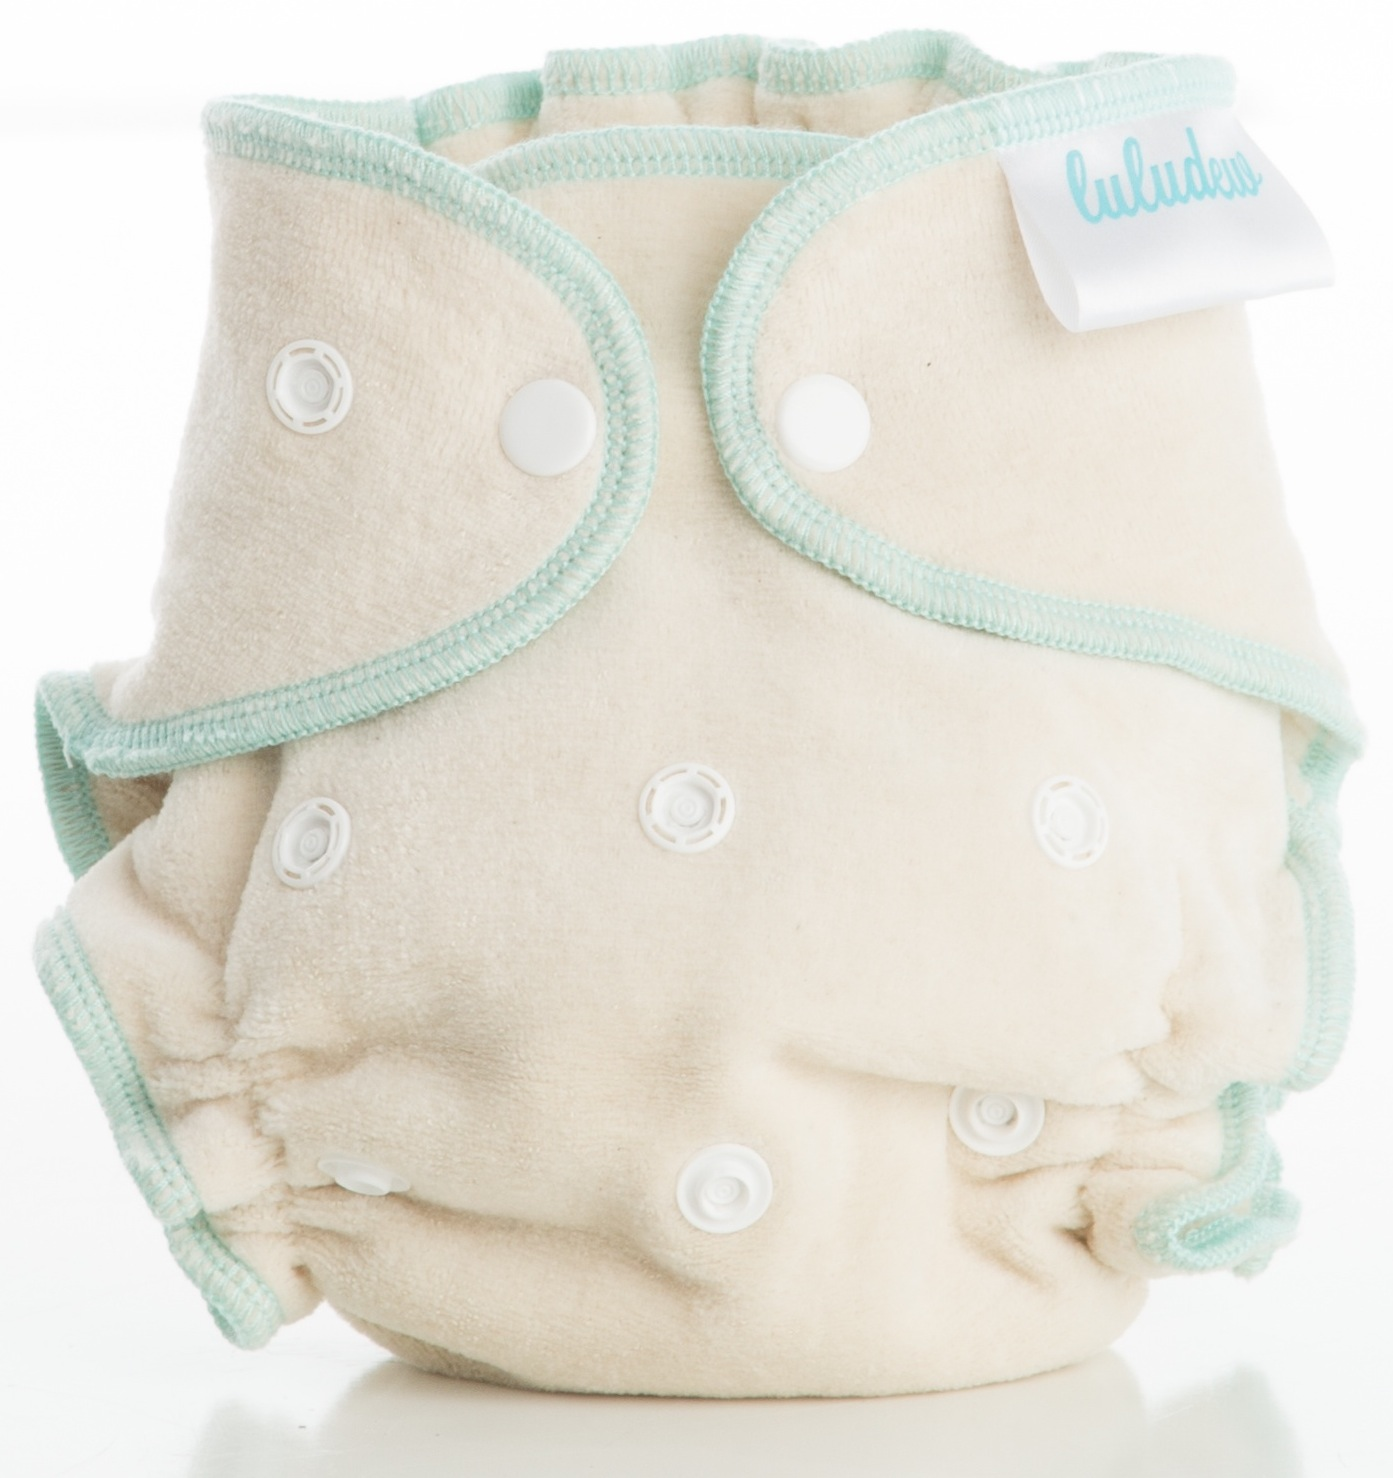 Weekly Fitted Cloth Diaper Service